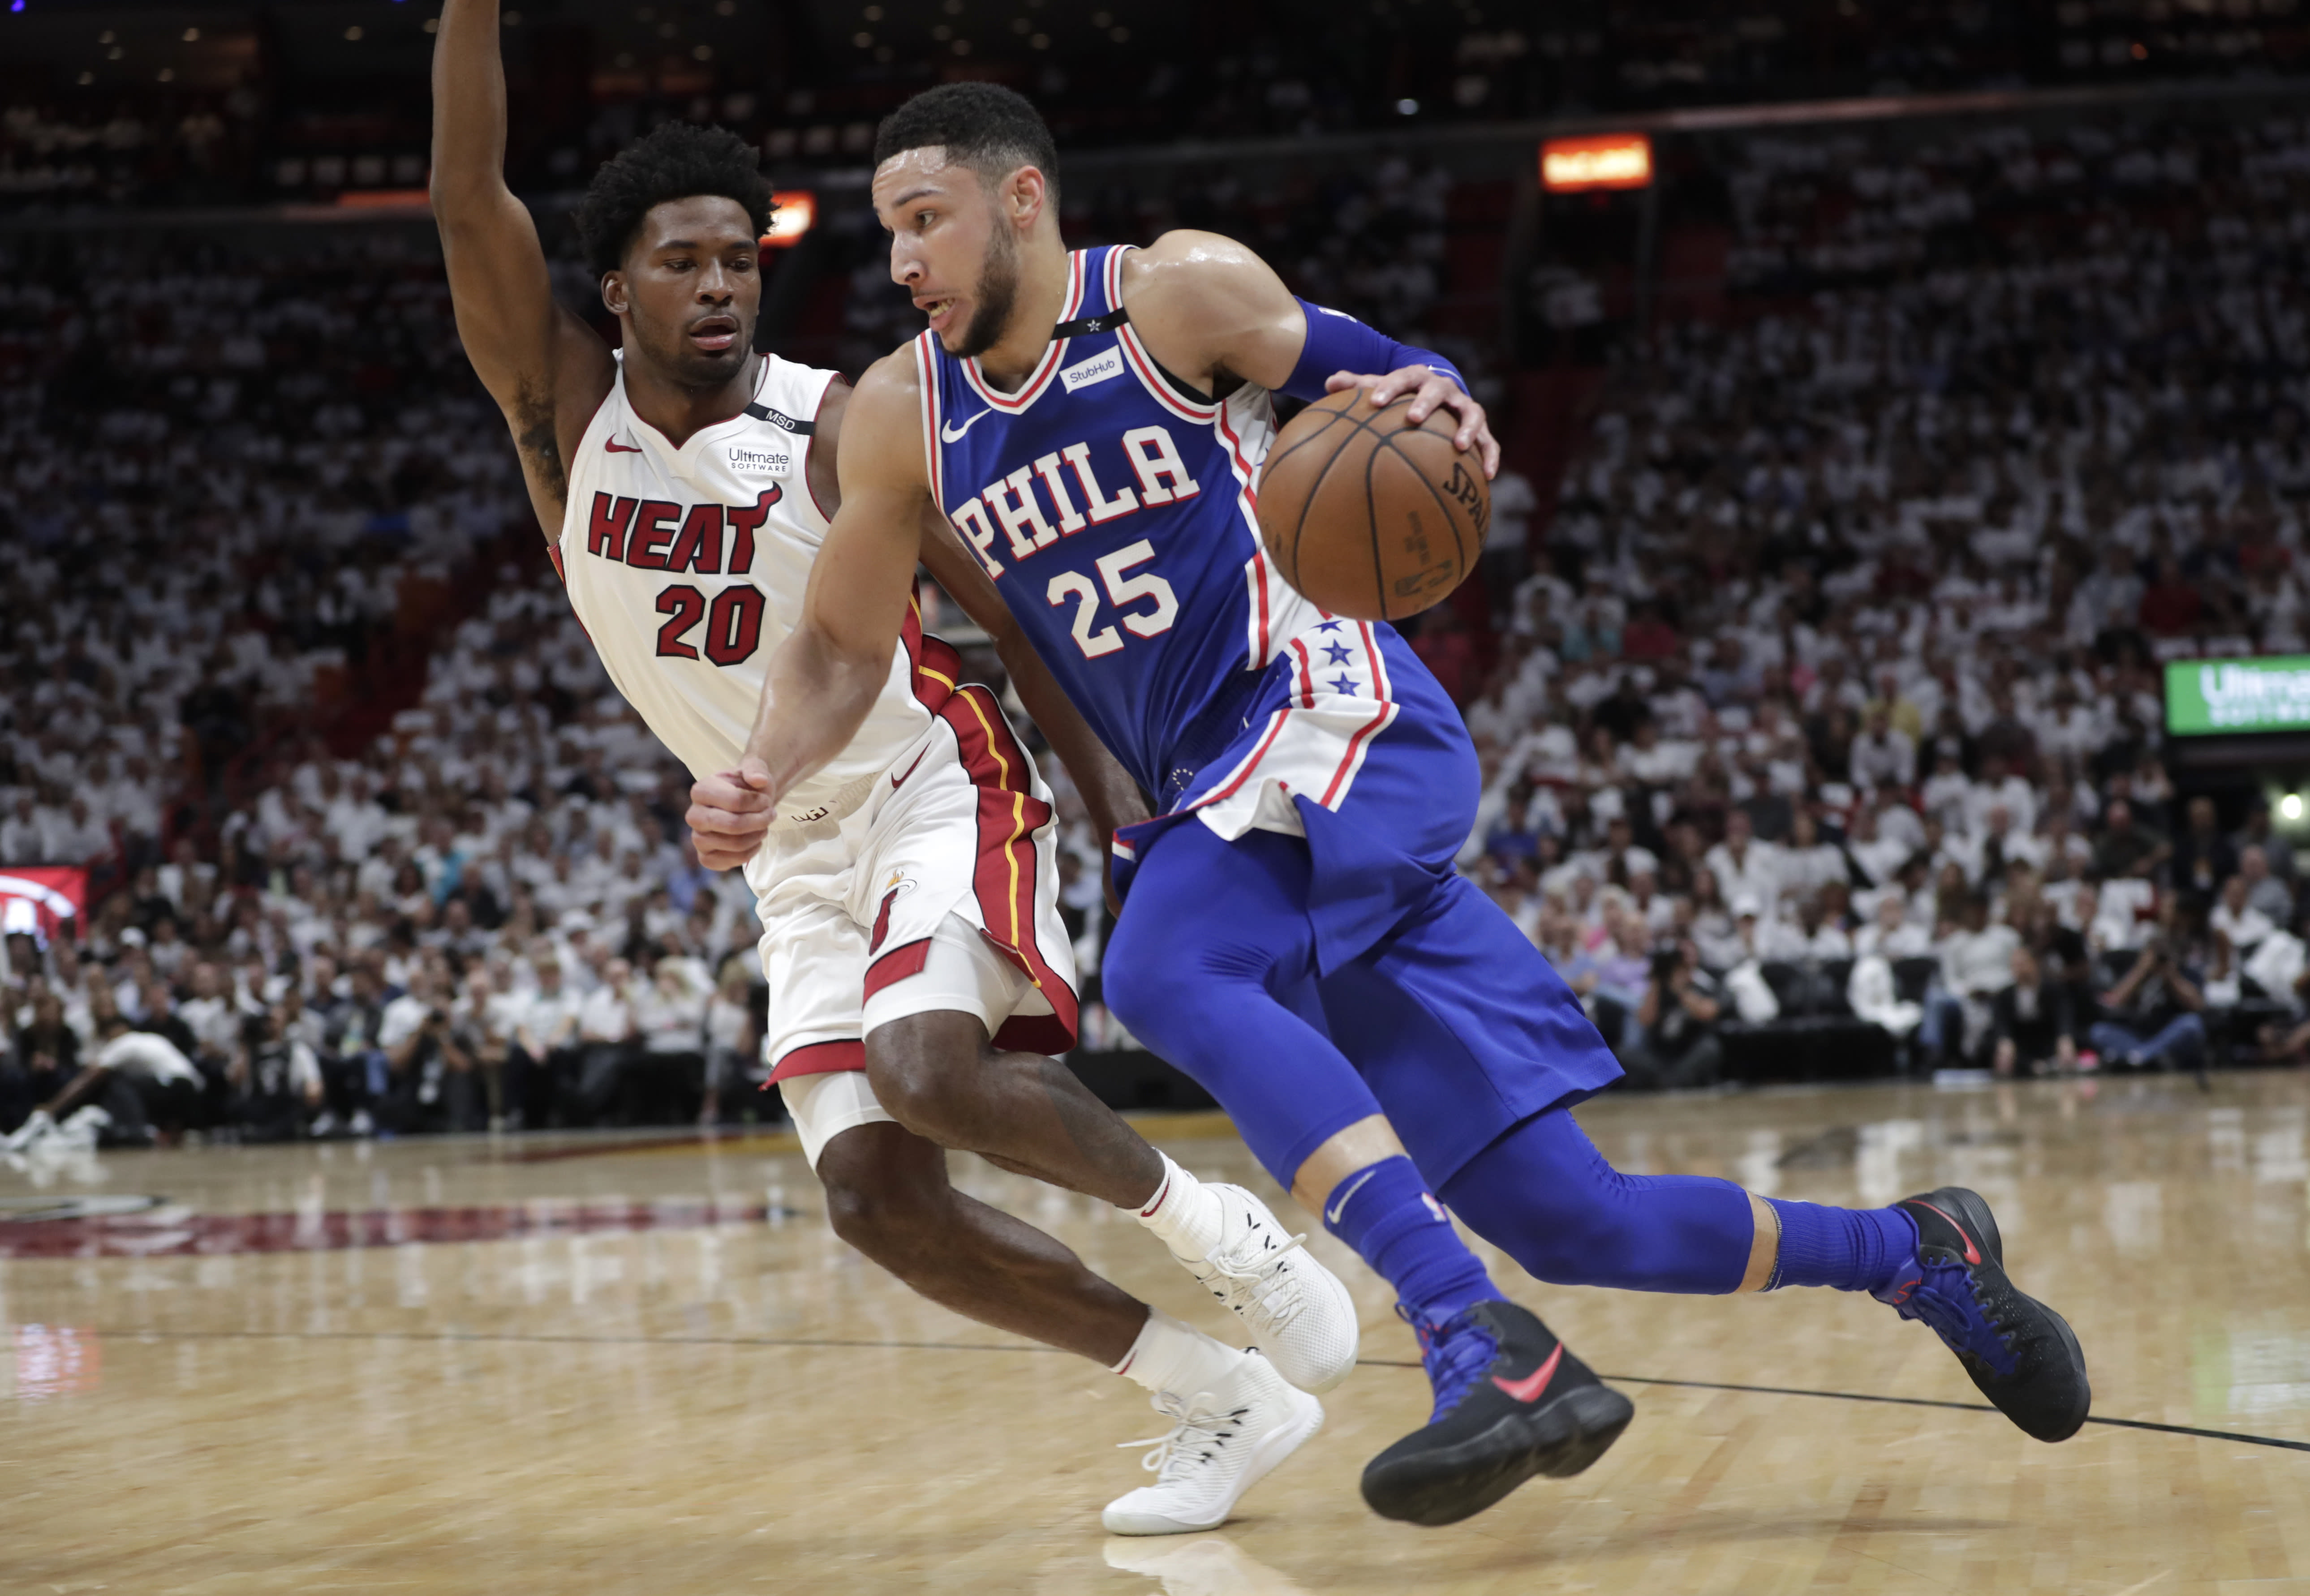 Ben Simmons records triple-double as 76ers take 3-1 lead over Heat